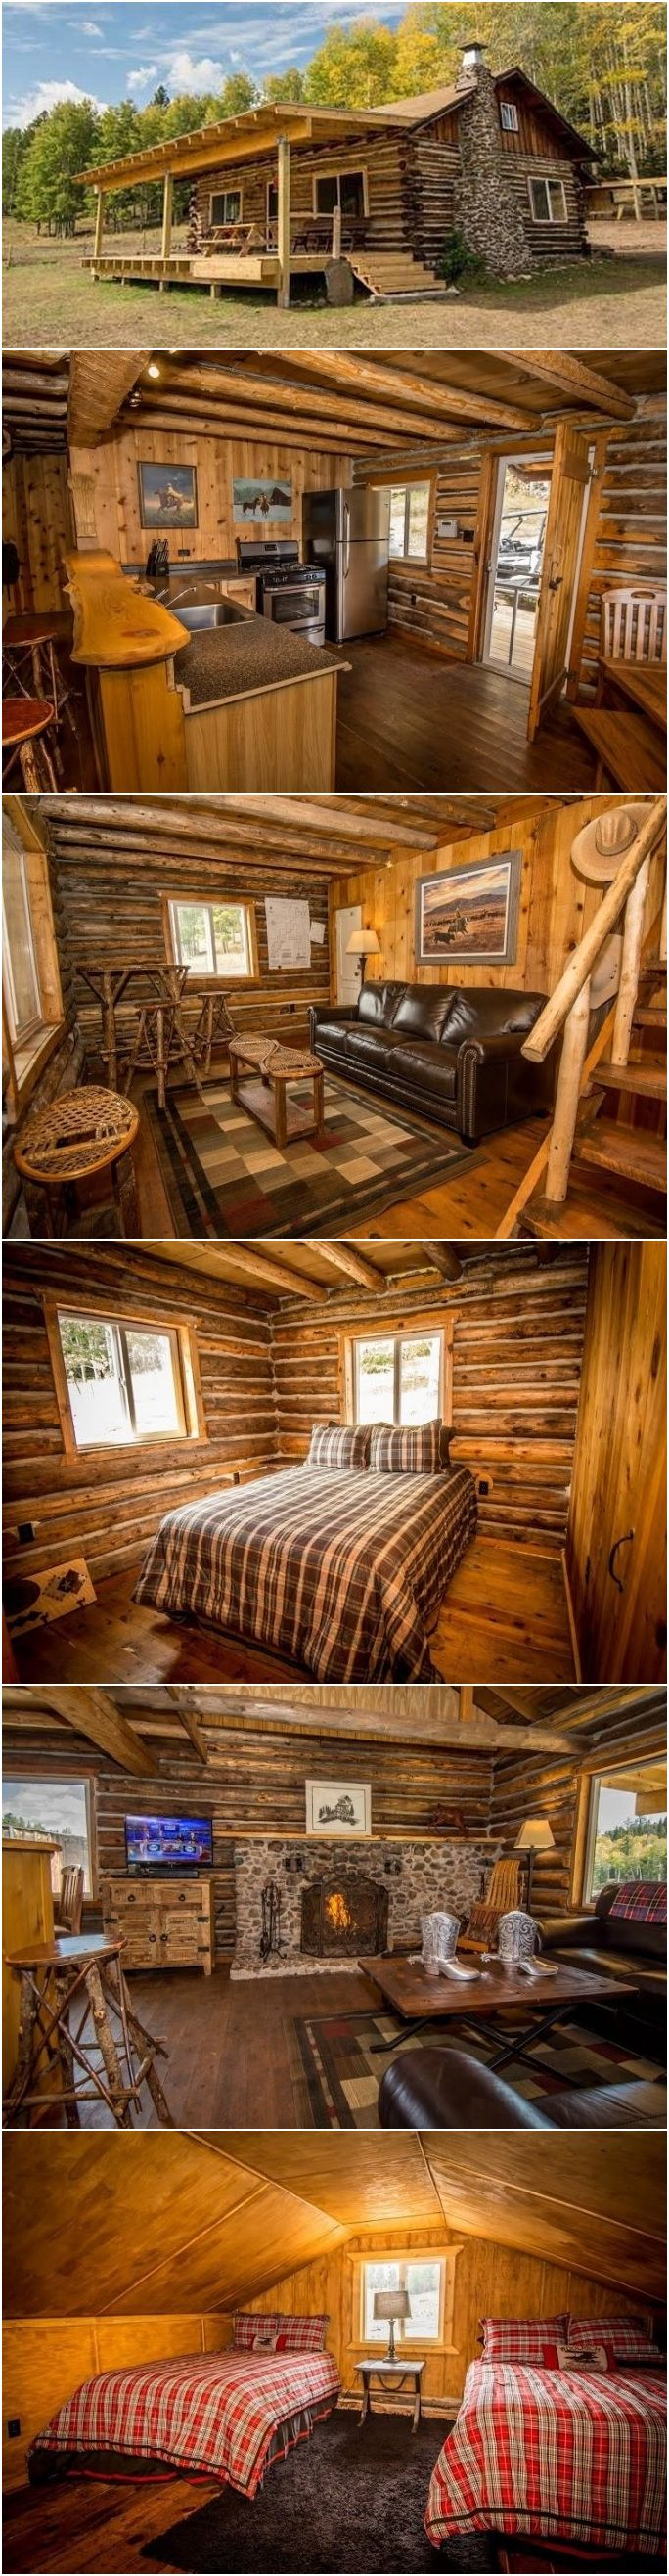 Rustic Country Cabin Dream Come True